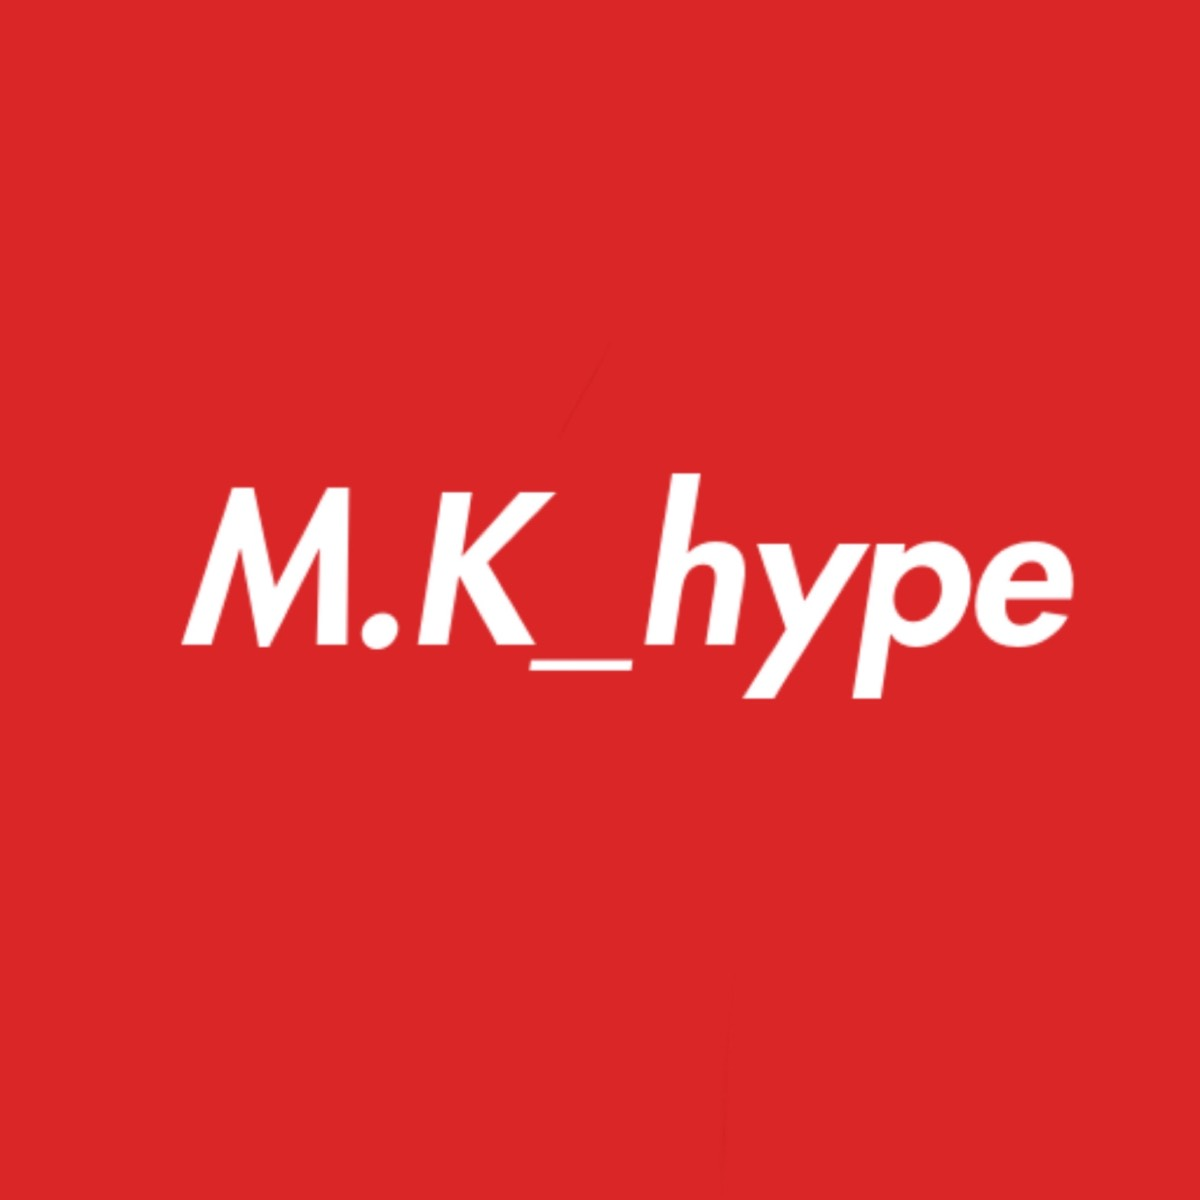 Bump profile picture for @m.k_hype